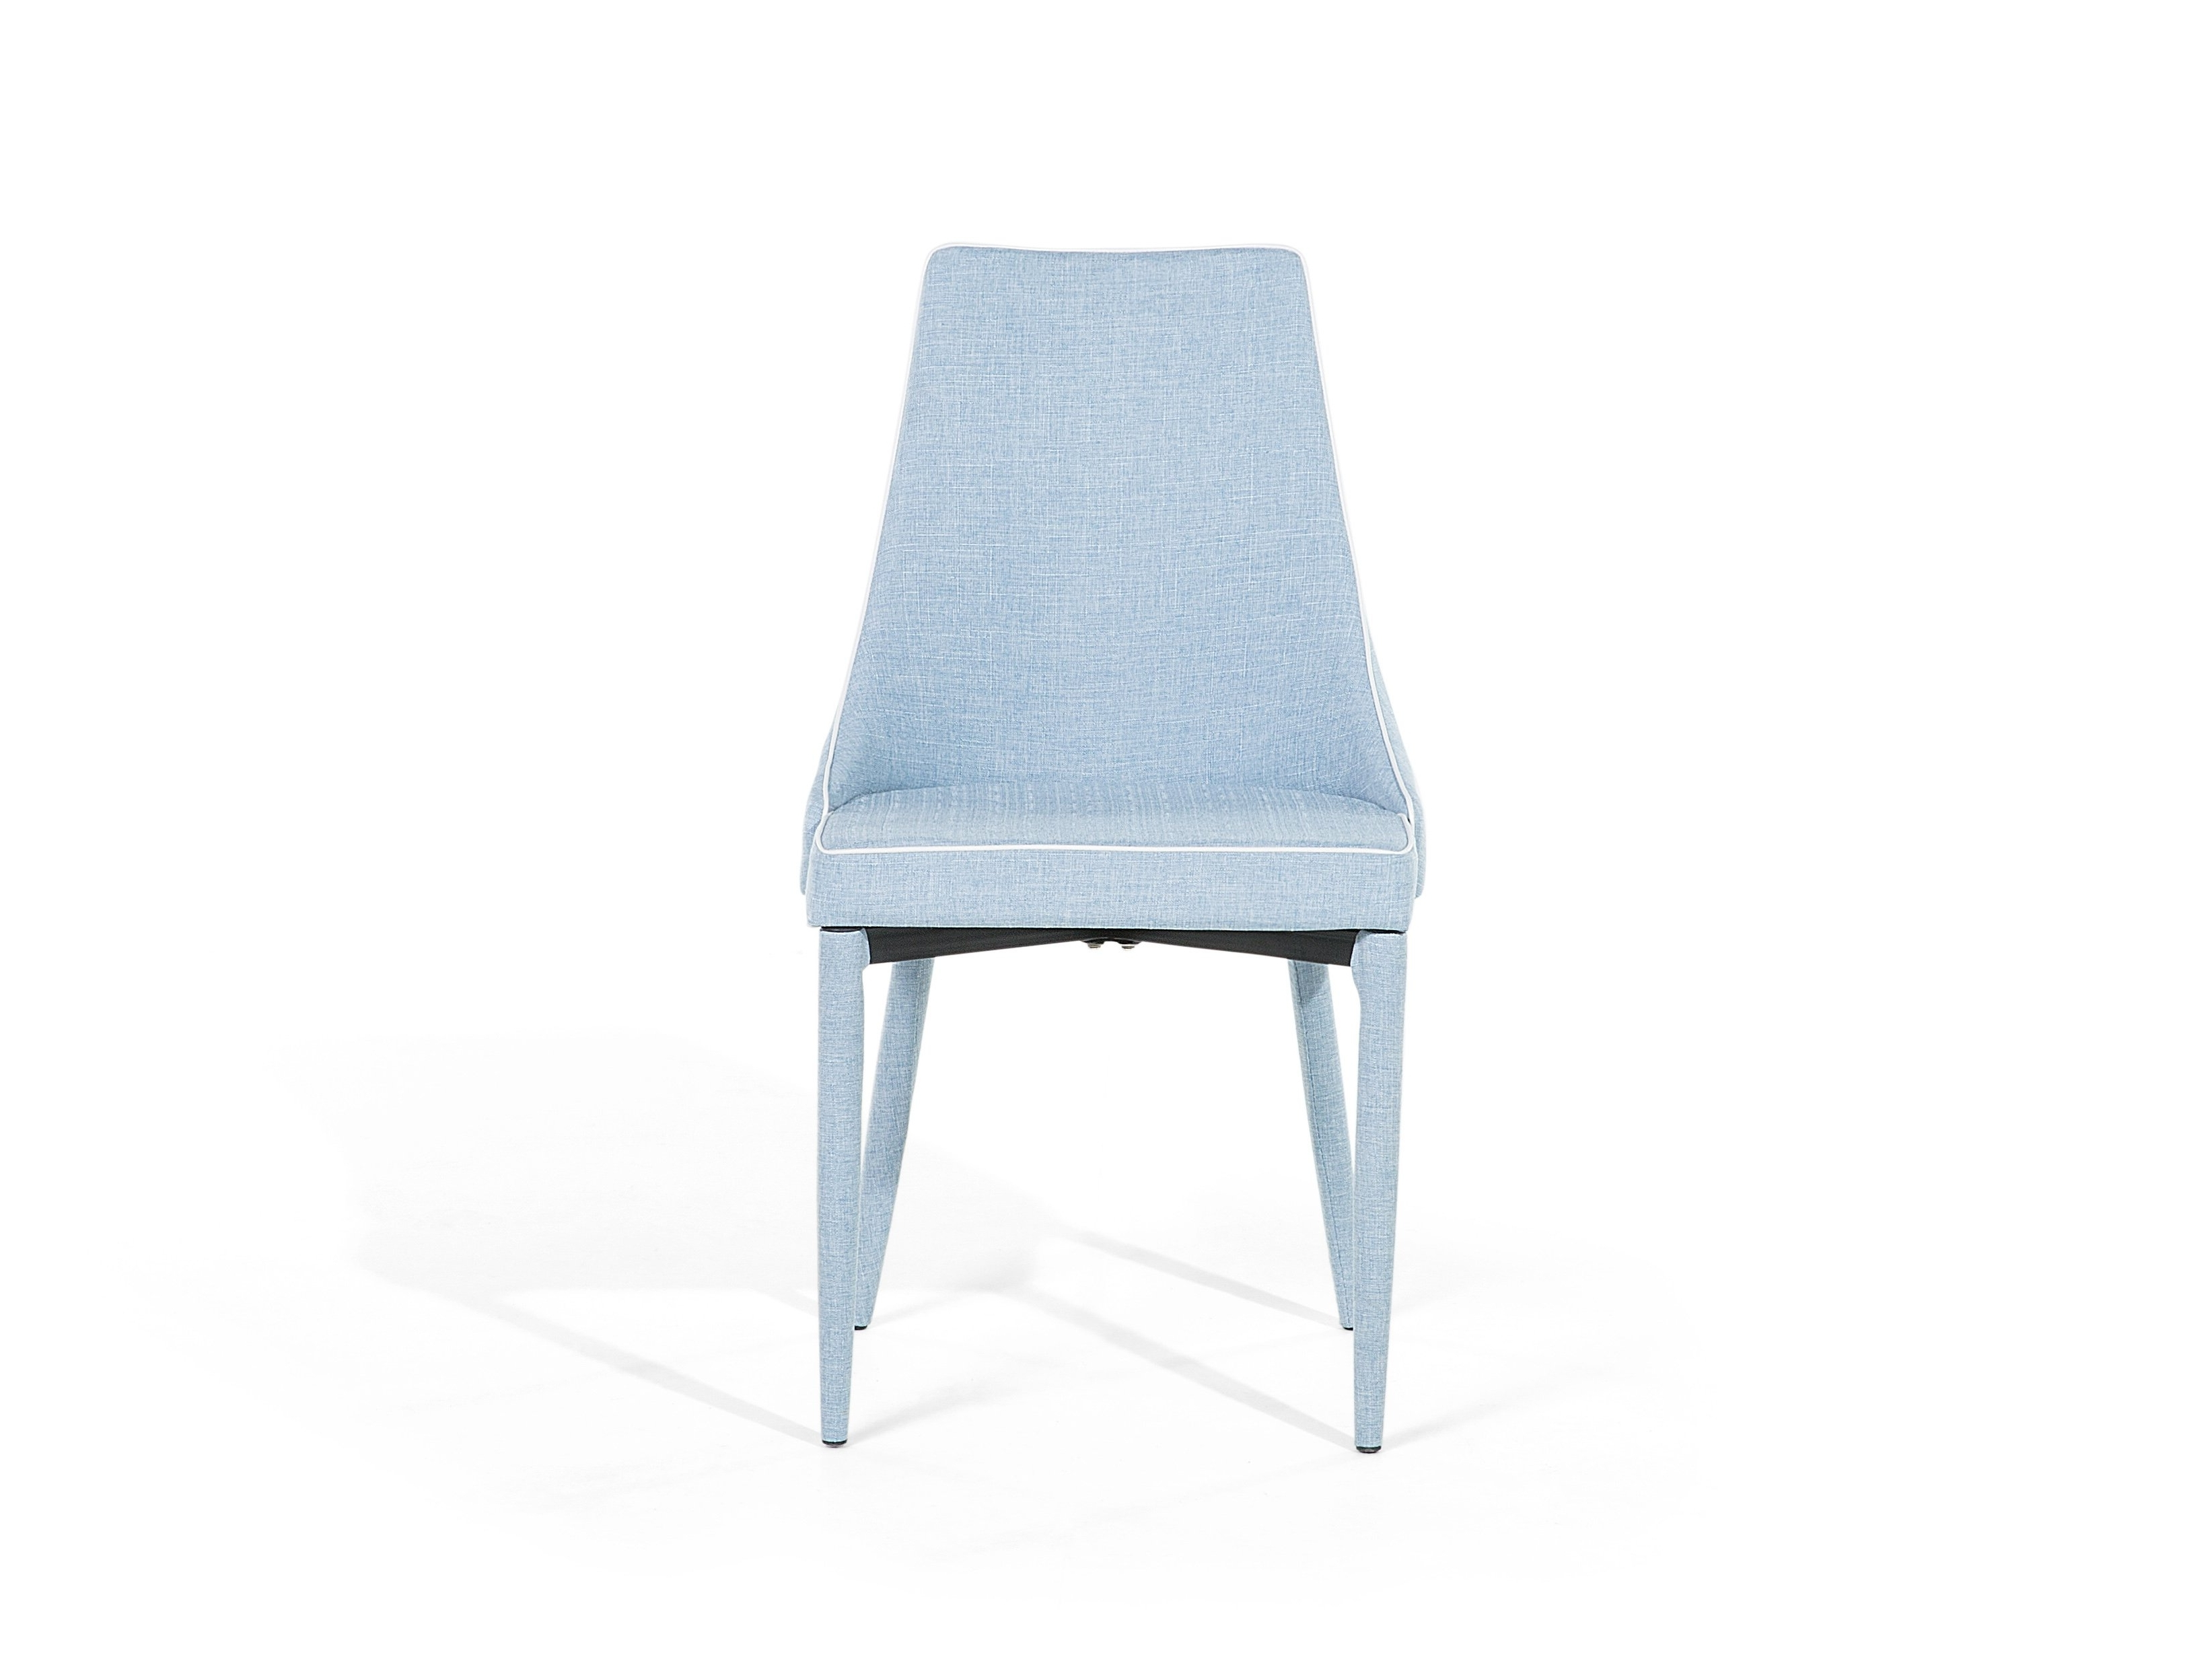 Most Current Chair Dining Chair Tulip Armless Upholstered Light Blue Ebay With Regard To Ebay Dining Chairs (View 19 of 25)